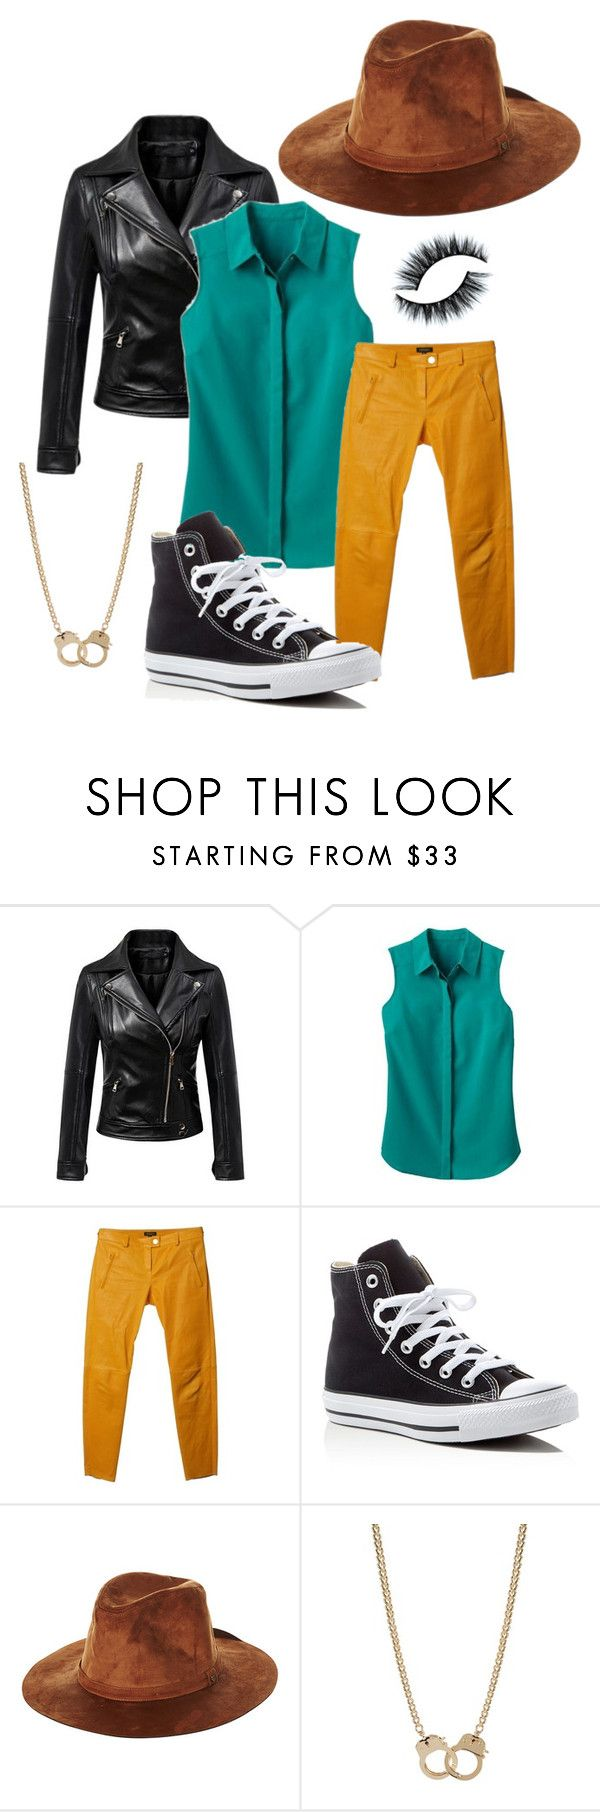 """""""Curse you Perry the platypus!"""" by sarahlackner ❤ liked on Polyvore featuring Chicnova Fashion, TravelSmith, ESCADA, Converse, Brixton and Sugar NY"""